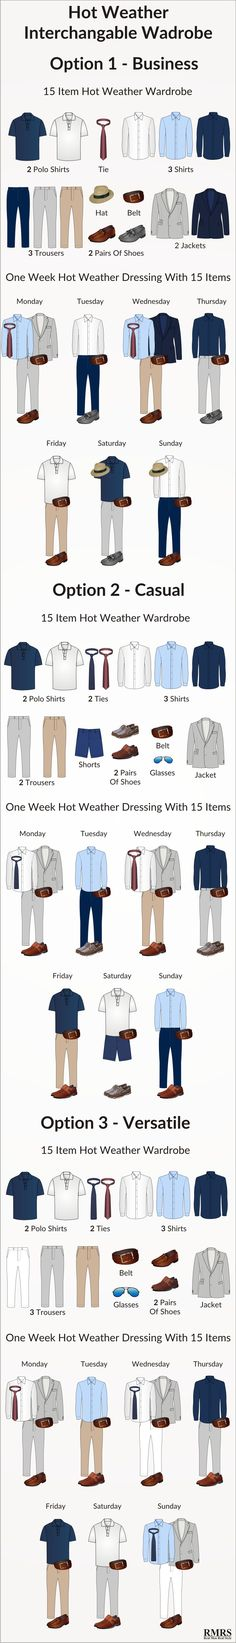 New infographic! A complete guide to the must-haves of men's summer style. #menswear #menstyle